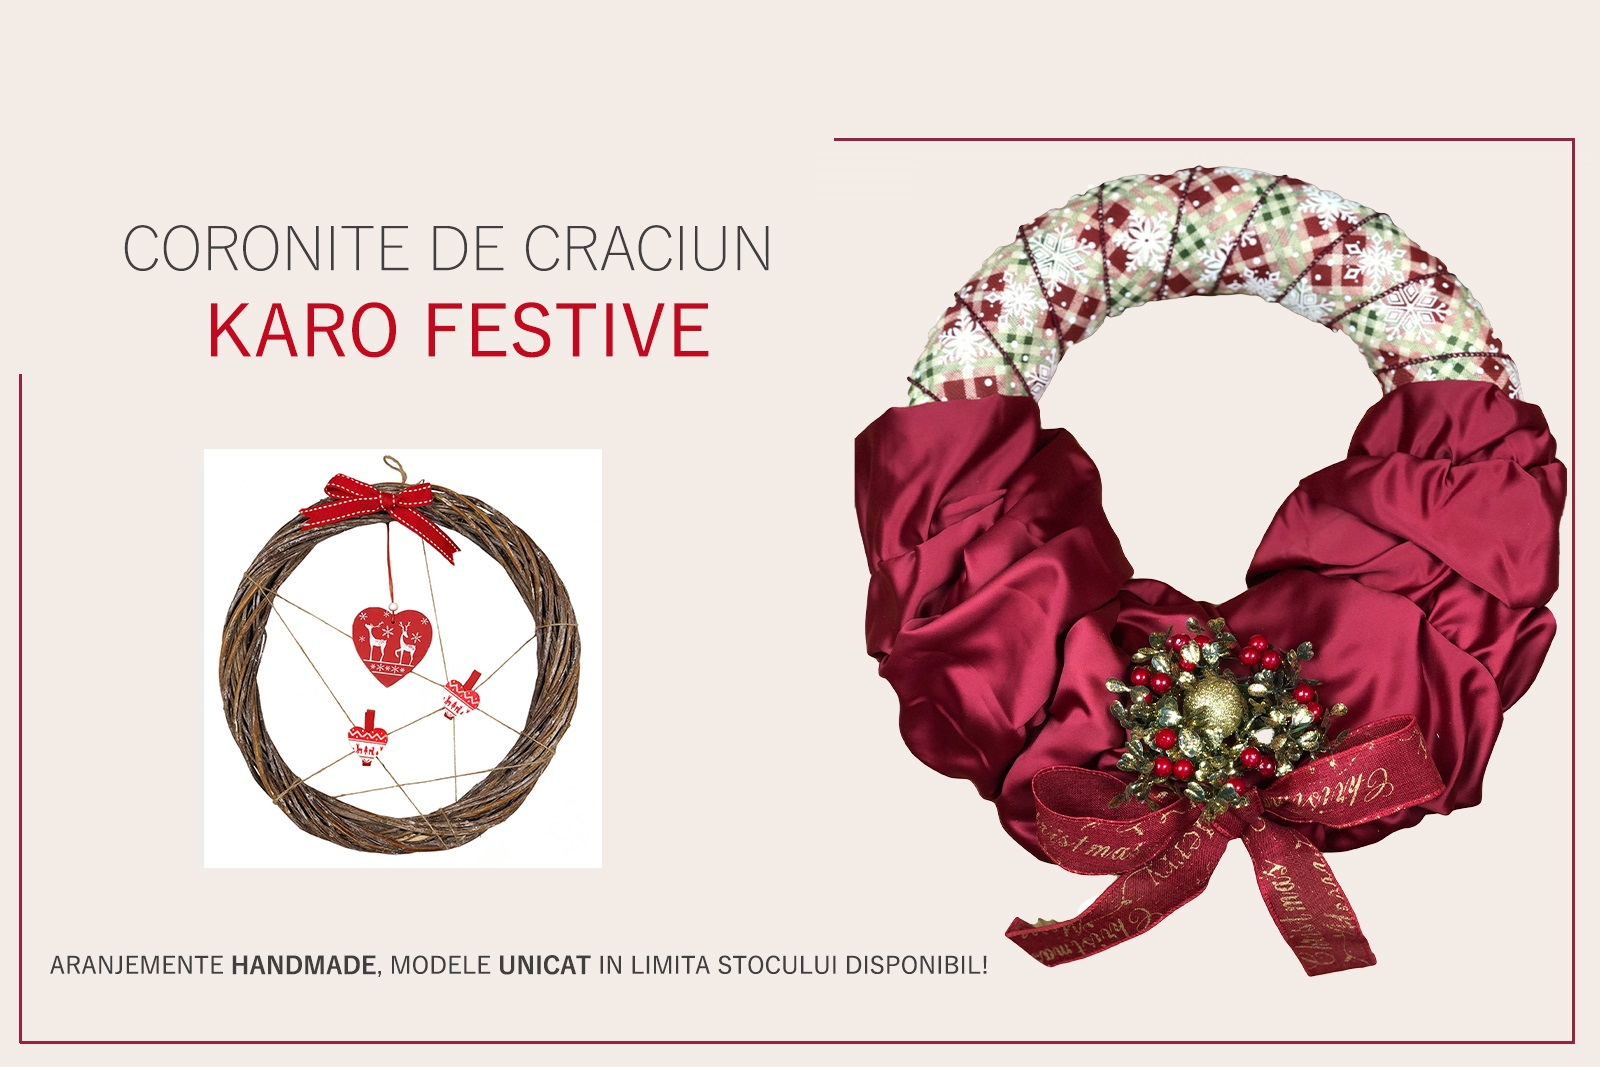 Coronite de Craciun Karo Festive!